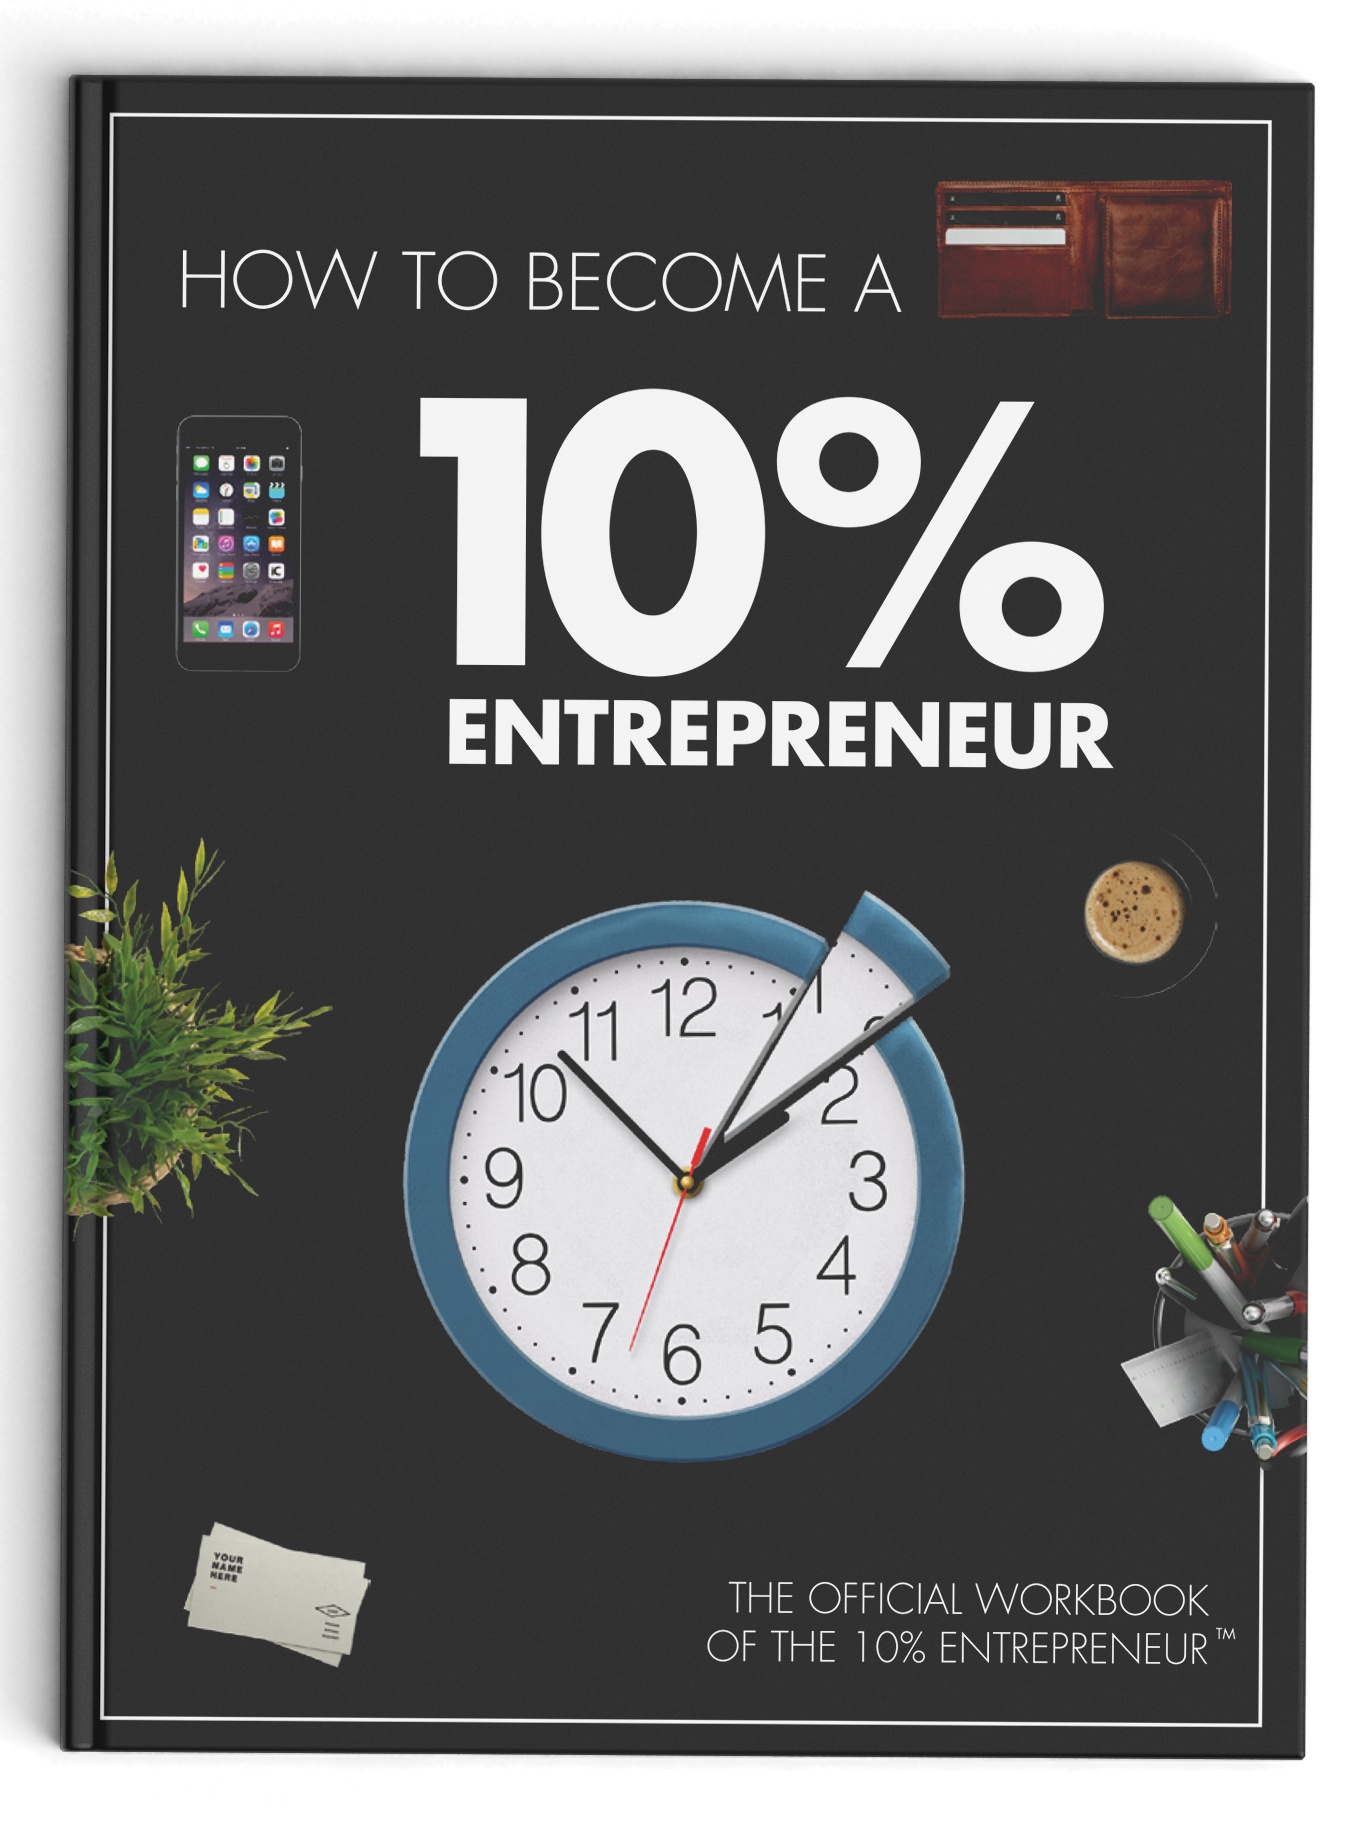 Ebook How to Become a 10% Entrepreneur